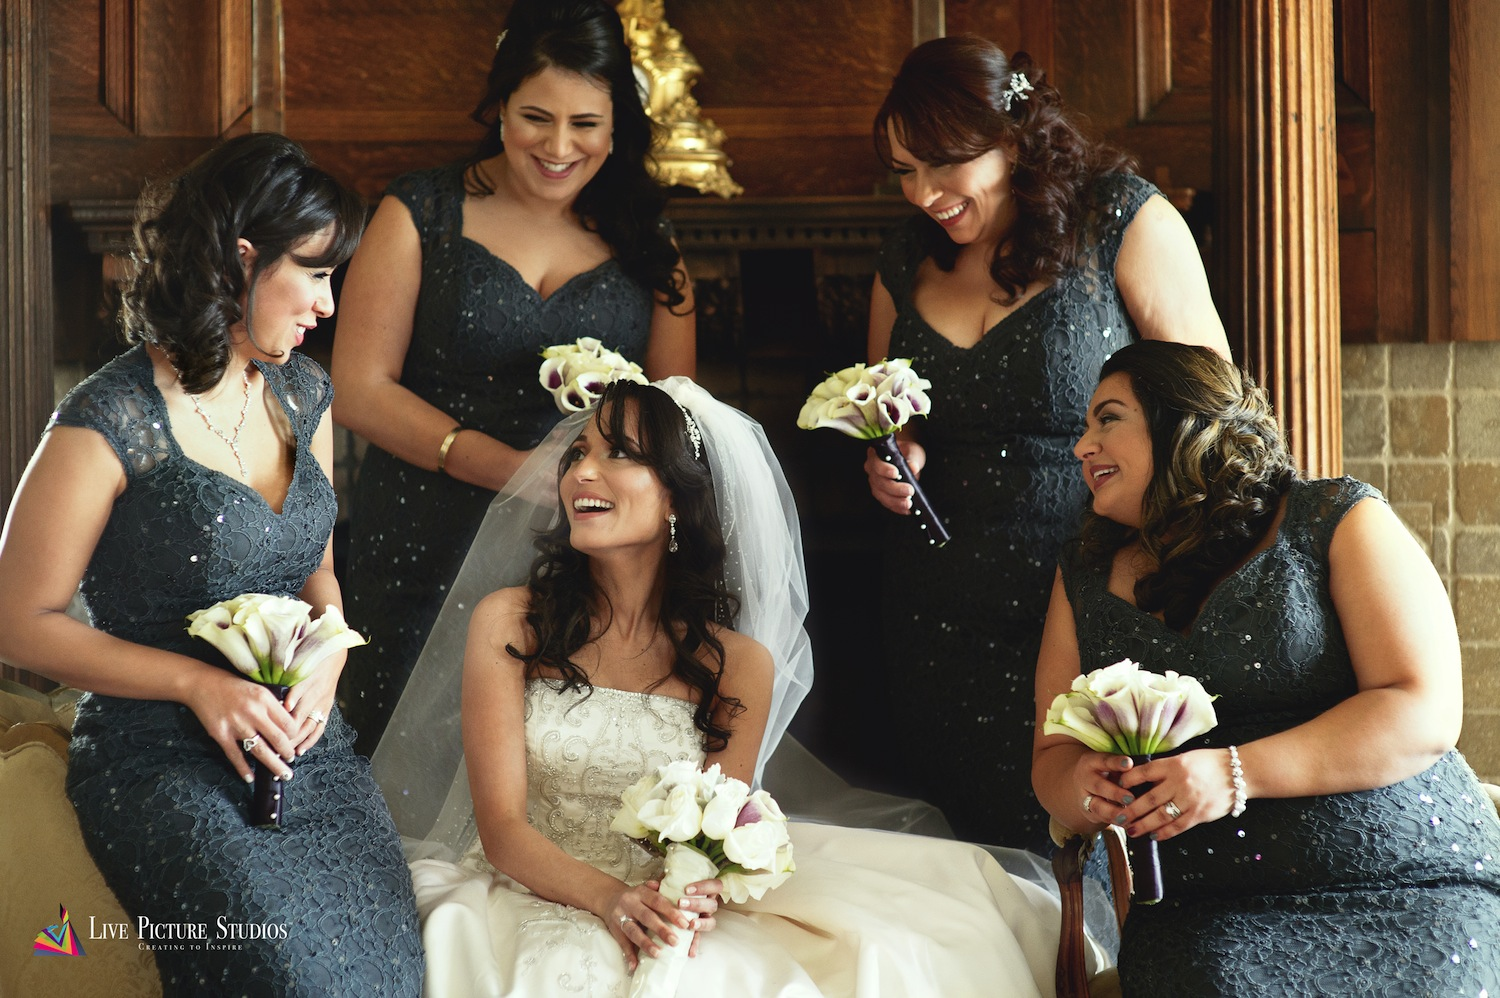 dolly-and-bridesmaids-holding-bouquets-and-laughing-before-wedding-photography-nj